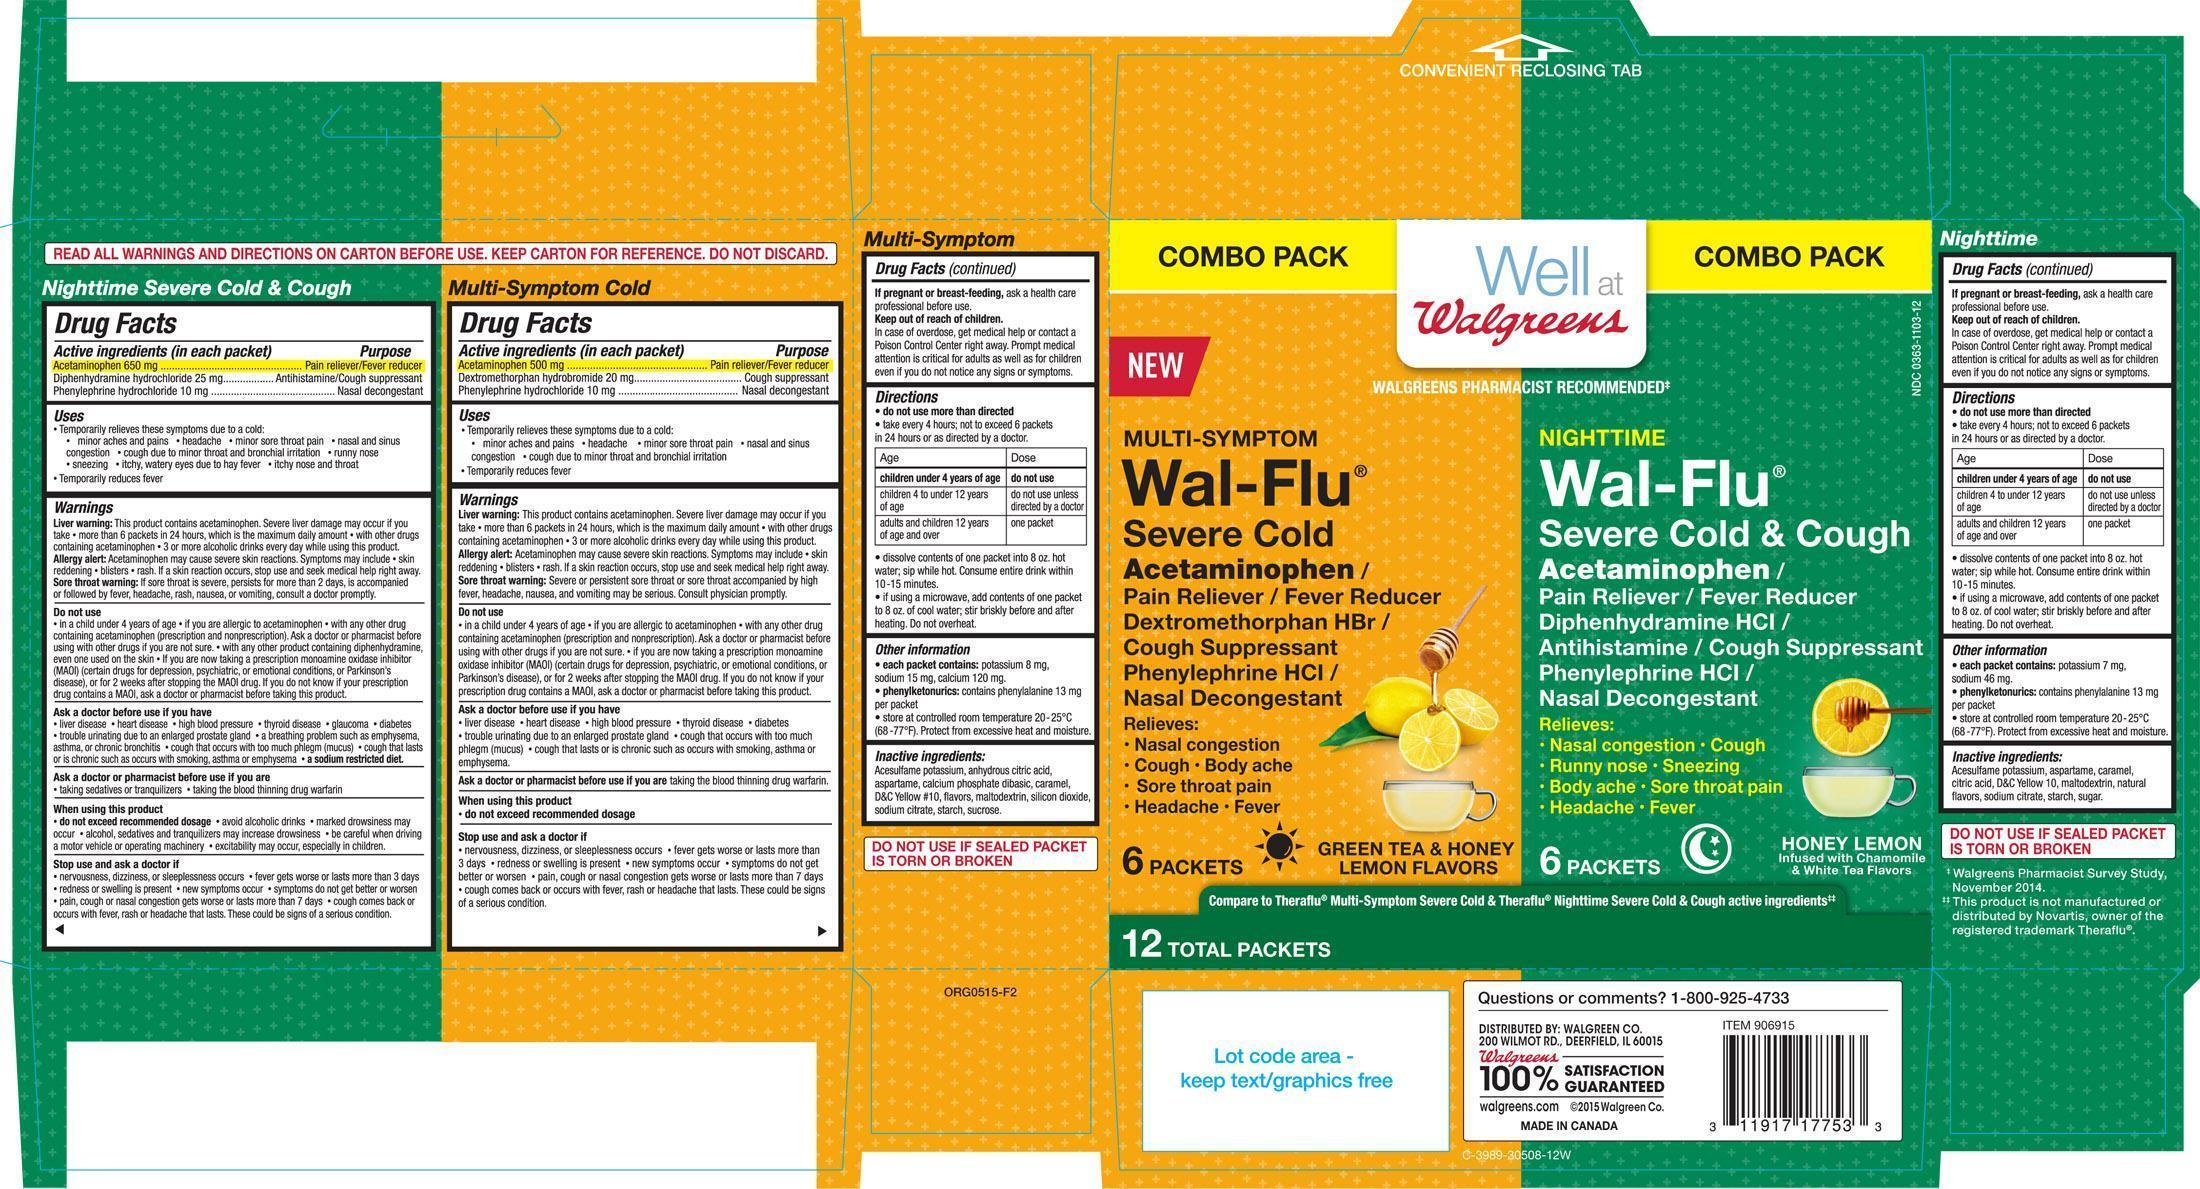 Well At Walgreens Multi-symptom Wal-flu Severe Cold And Nighttime Wal-flu Severe Cold And Cough Kit (Acetaminophen, Diphenhydramine Hcl, Phenylephrine Hcl And Dextromethorphan Hbr) Kit [Walgreen Co.]